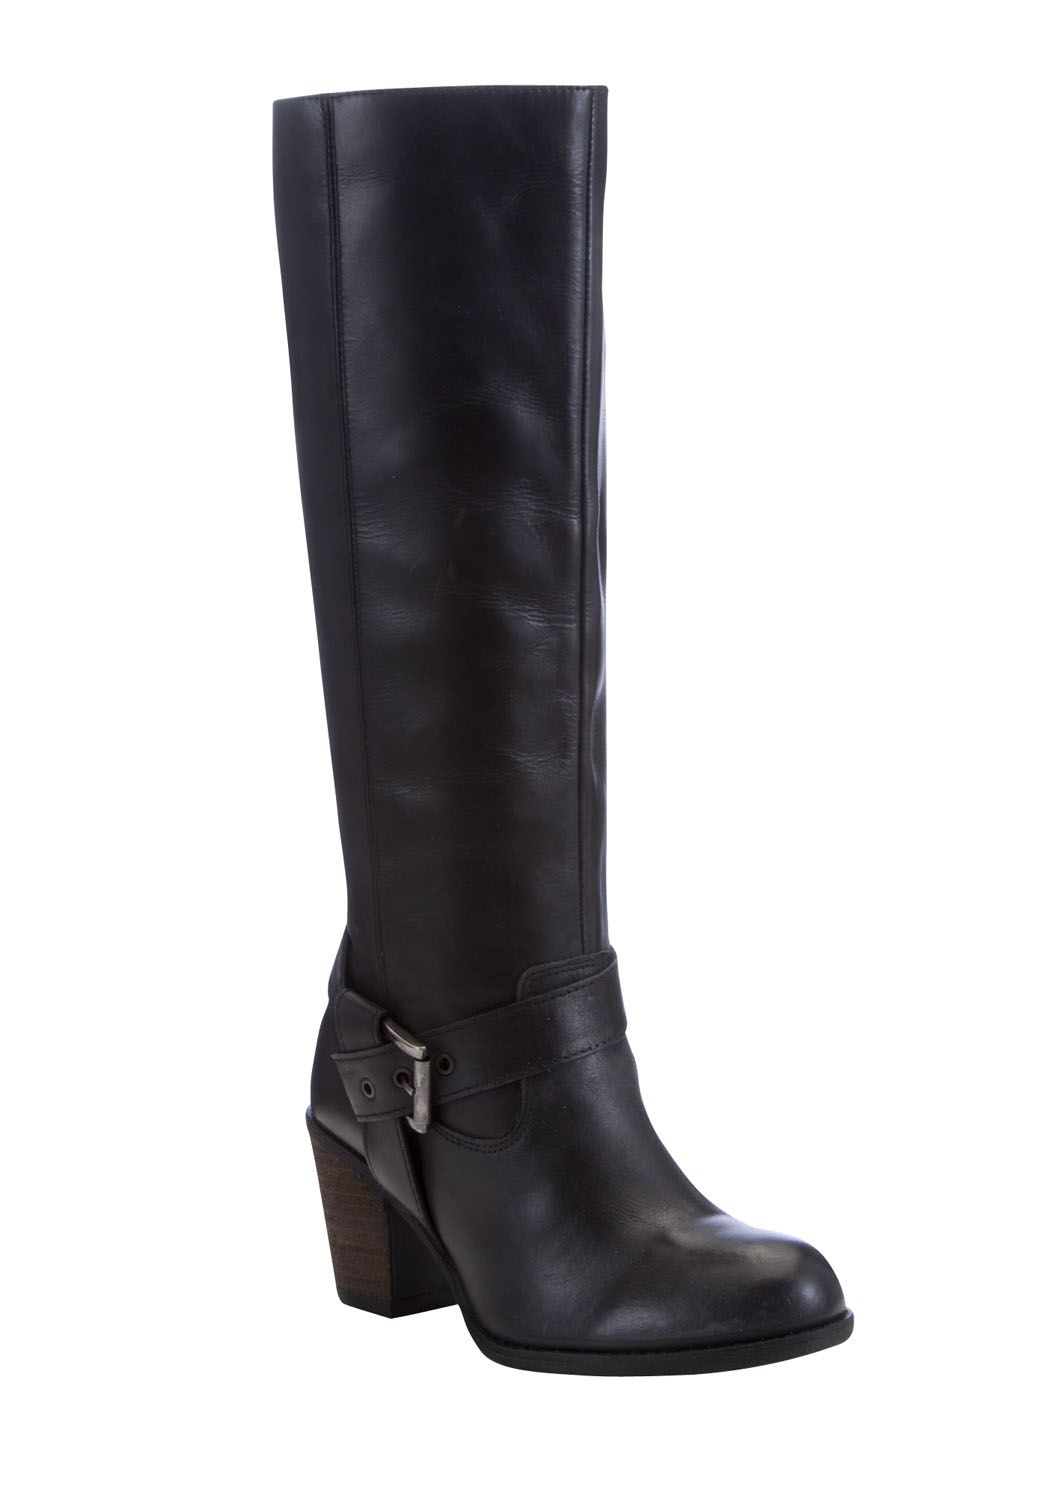 Details about  /Women/'s Western High Heel Biker Cowboy Goth Knee High Boots Patent Leather Boots